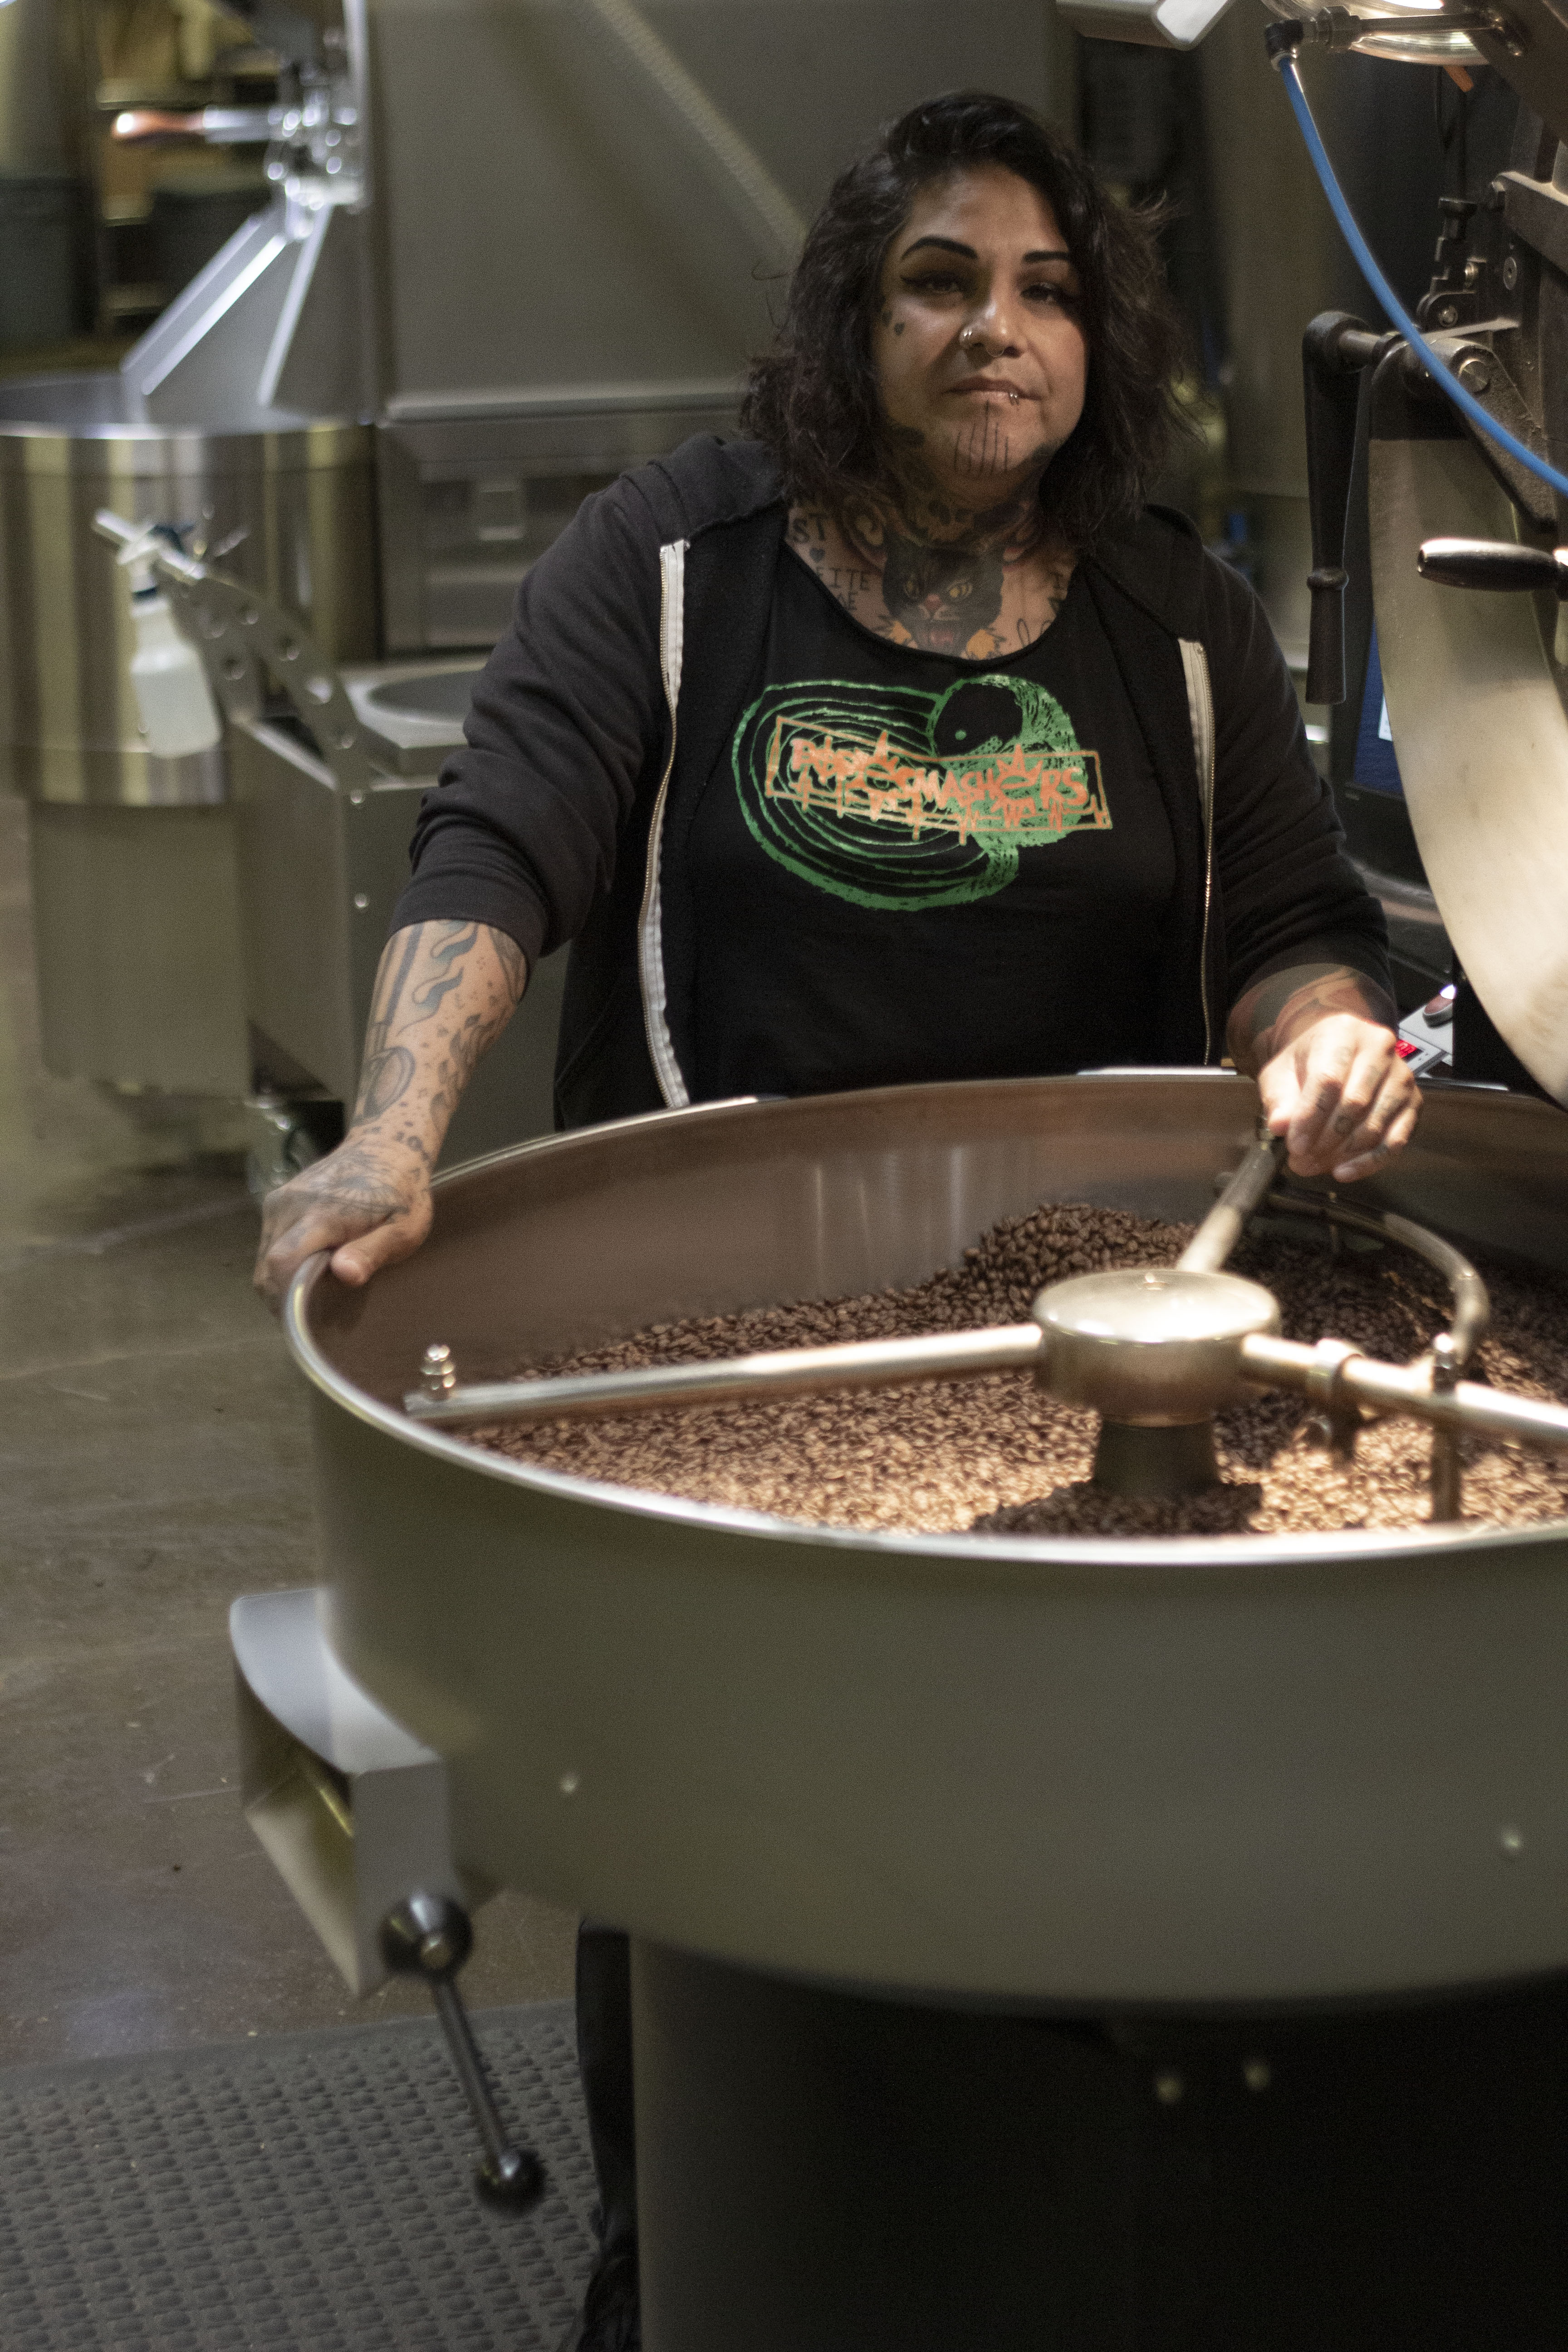 Cheyenne Xochitl Love has worked in the Bay Area coffee industry for over 28 years, and most recently founded Queer Wave Coffee, an Oakland-based micro roaster.